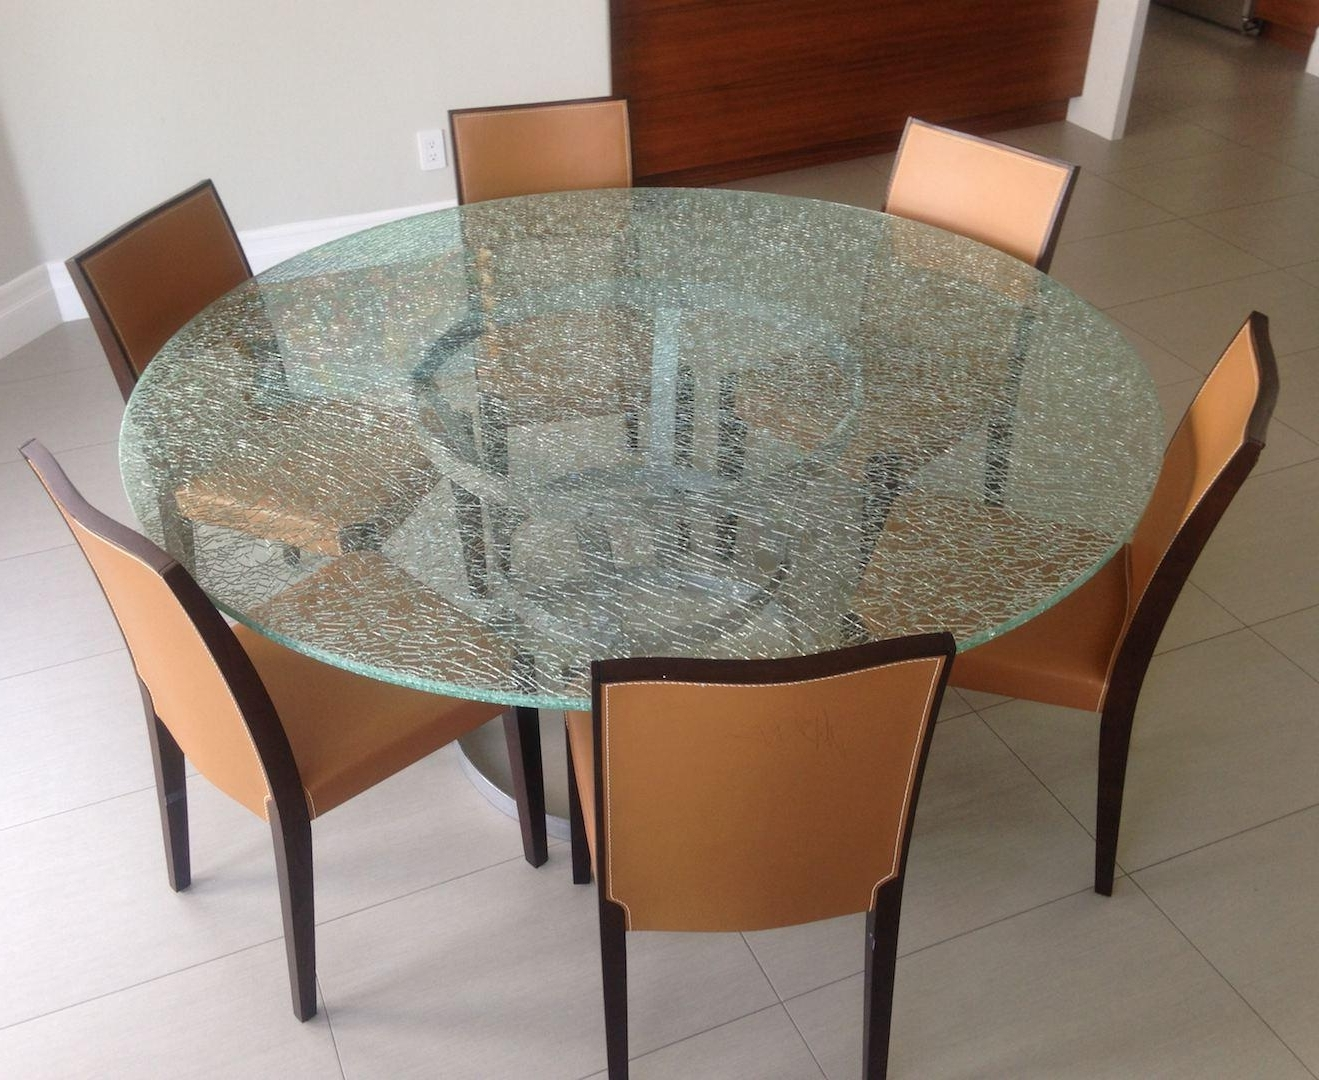 2017 Crackle Glass Dining Table Top : House Photos – Crackle Glass Dining Pertaining To Wooden Glass Dining Tables (View 1 of 25)